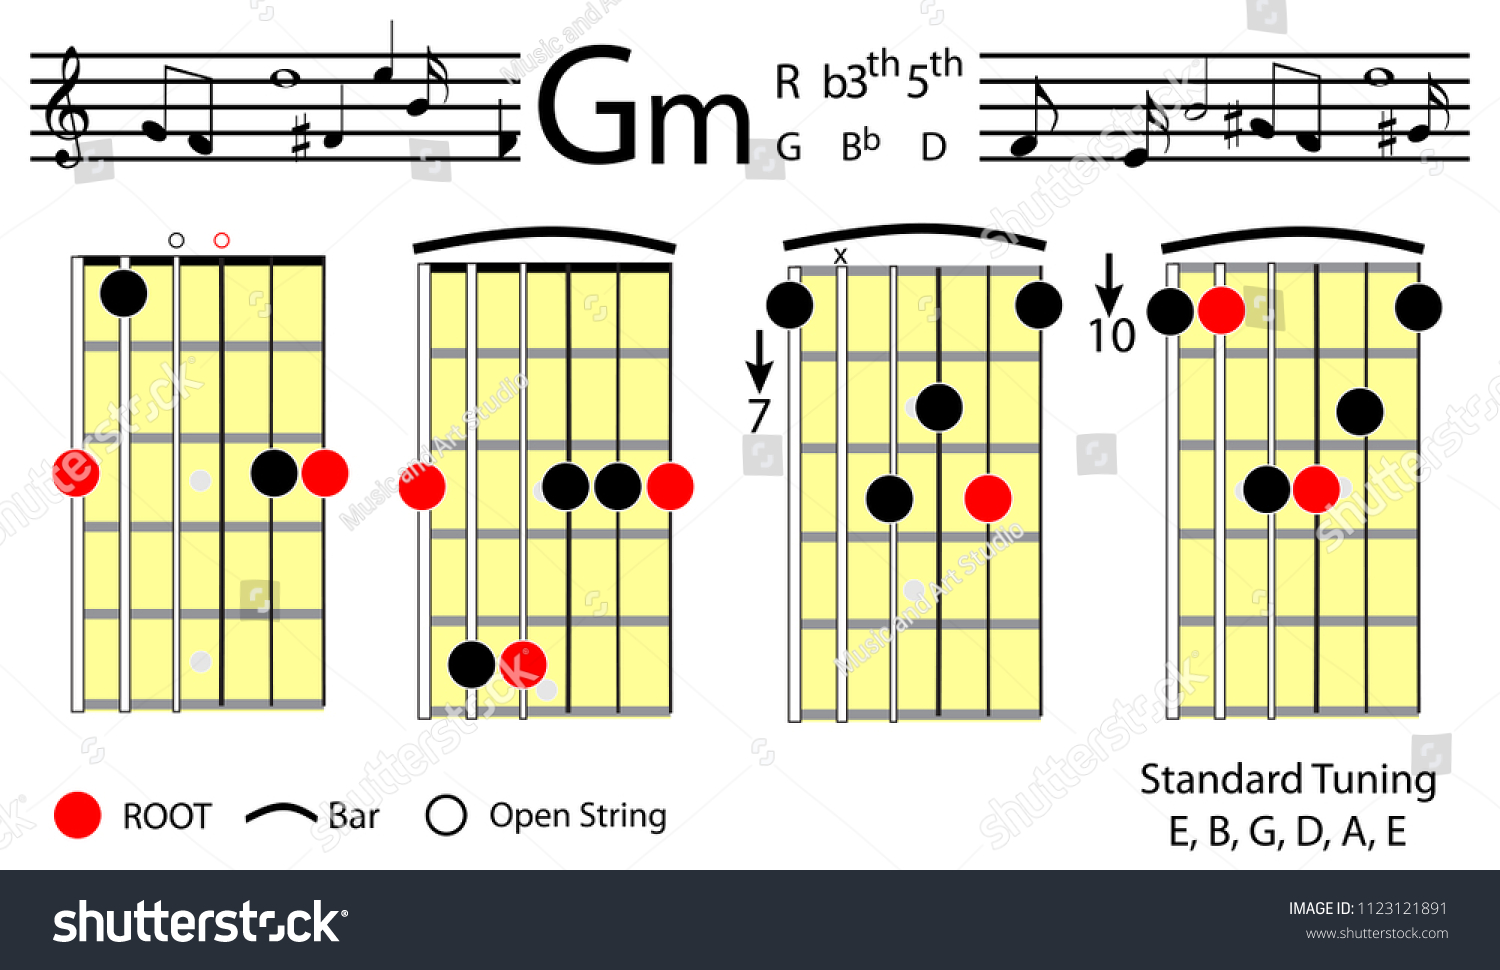 Beautiful G Minor Guitar Chords Adornment Beginner Guitar Chords